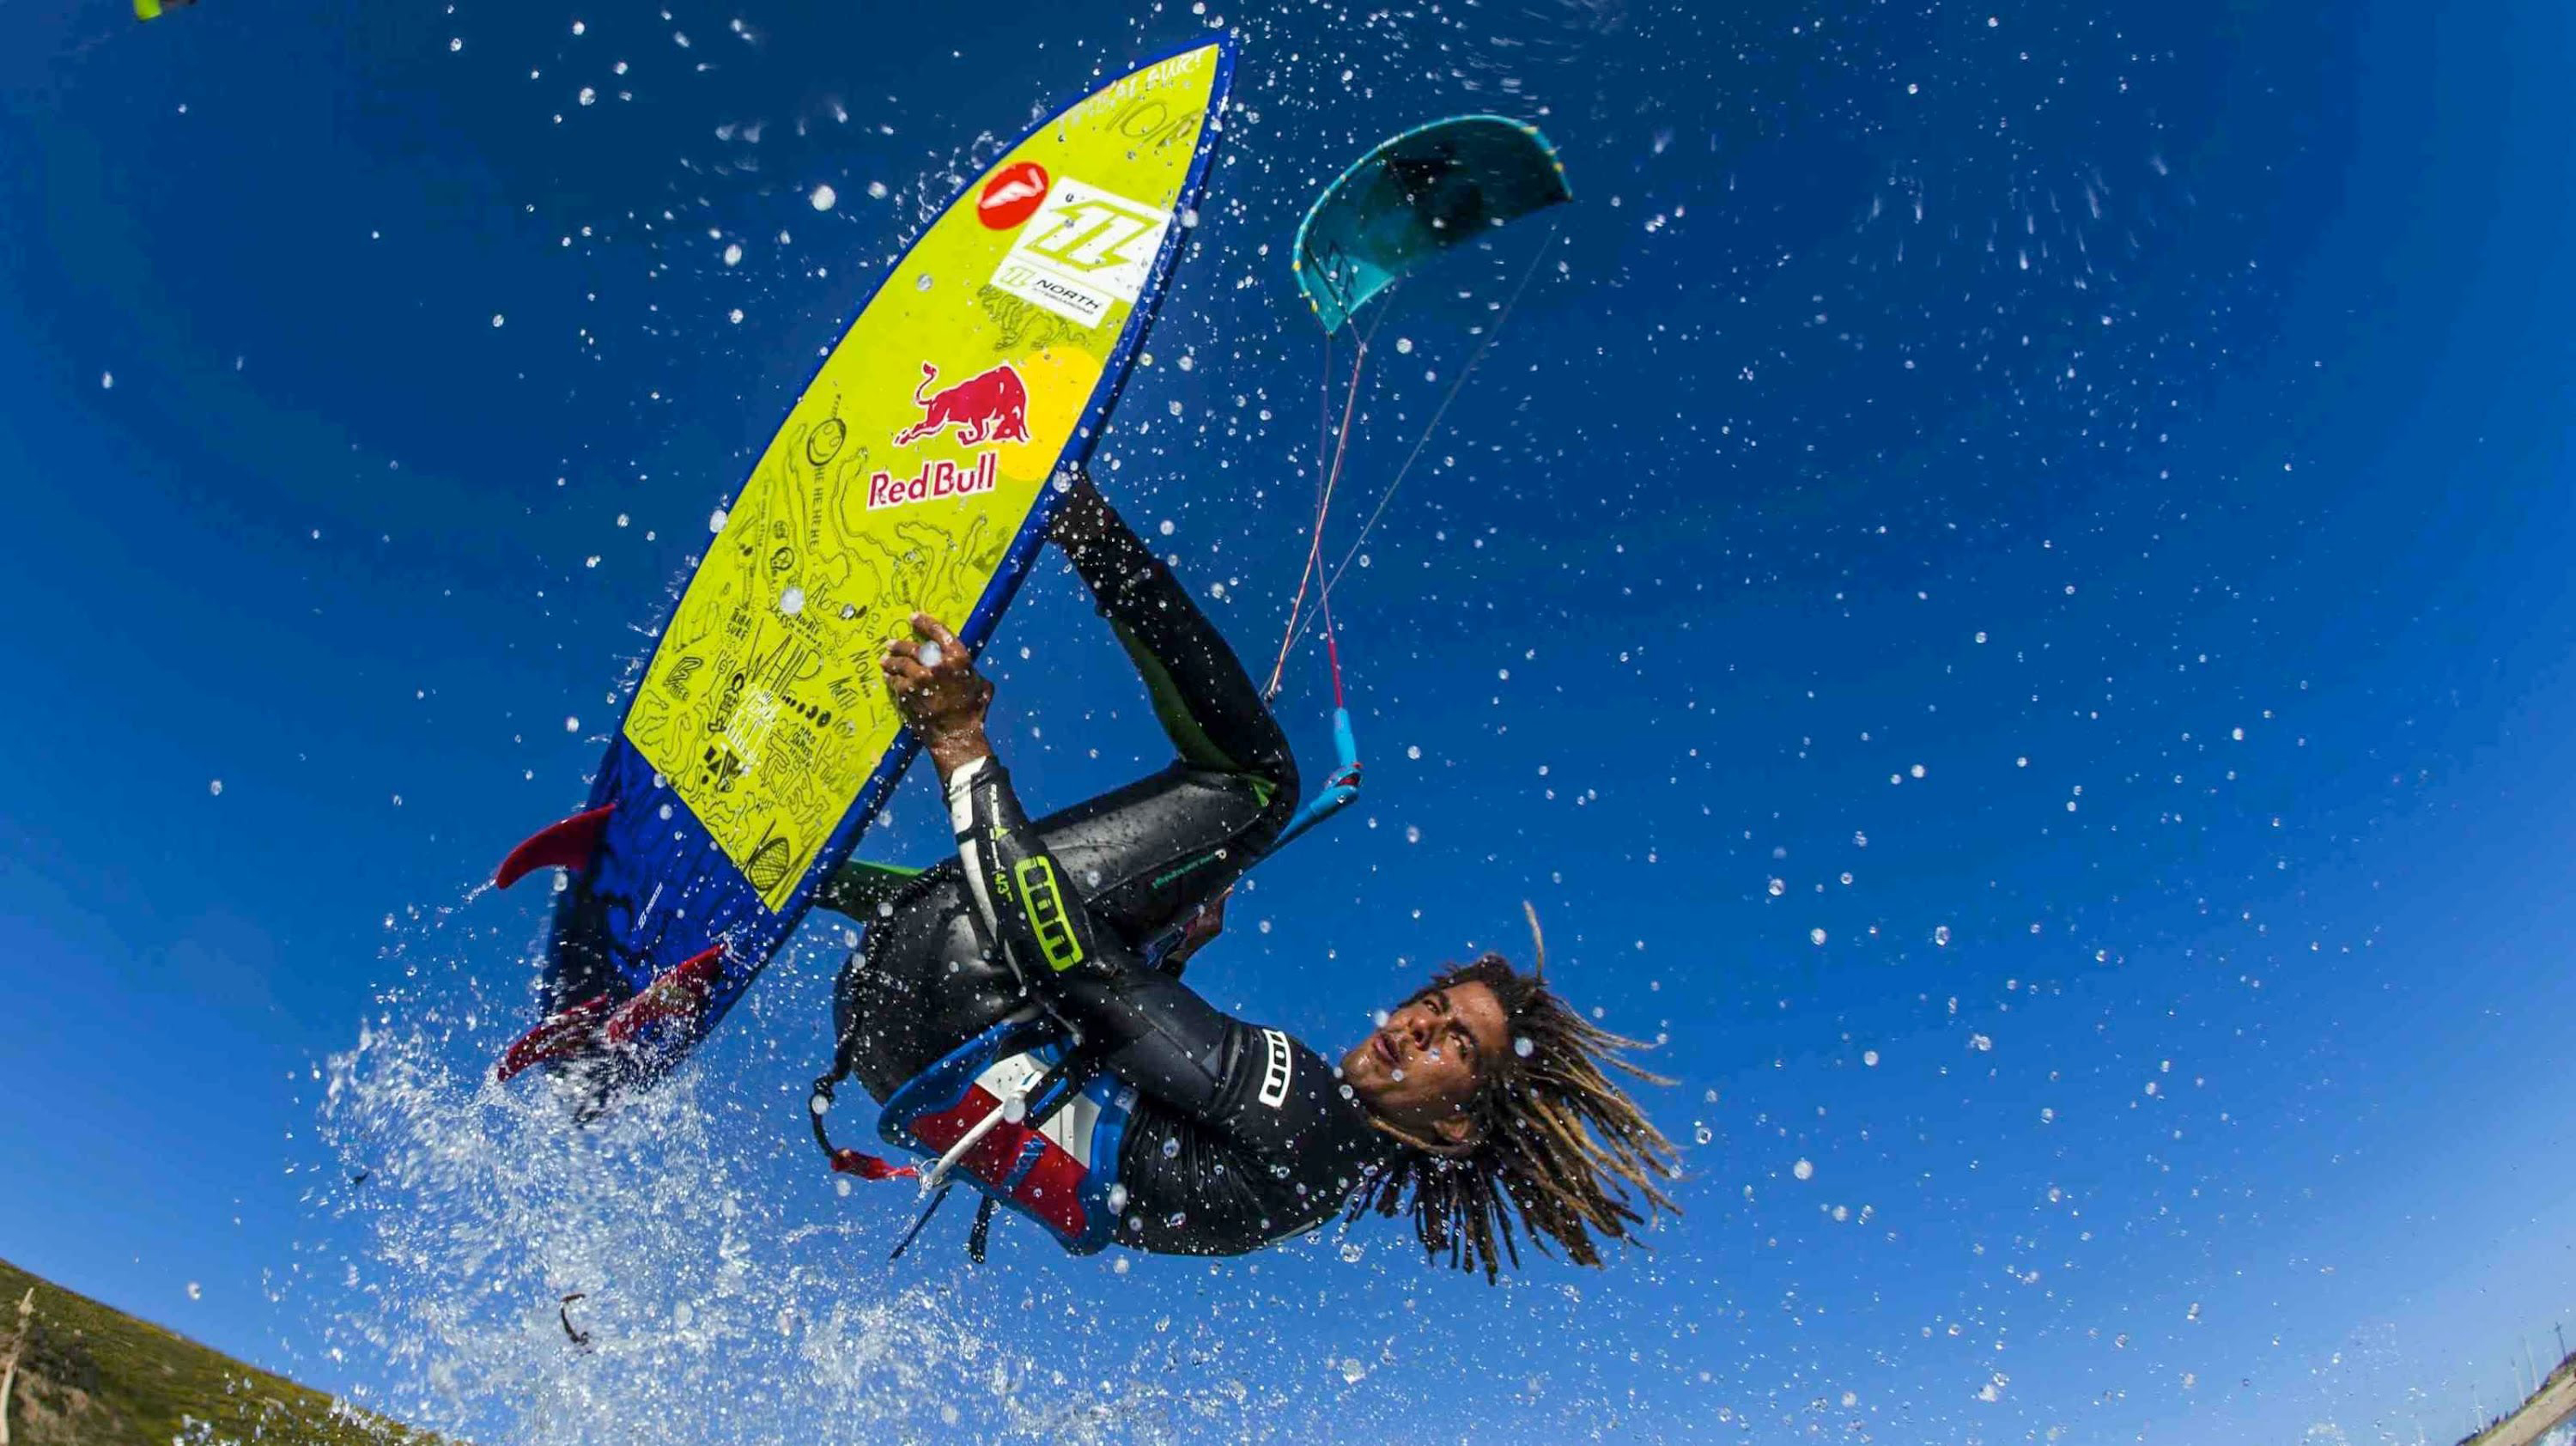 kitesurf wallpaper image - Airton Cozzolino with a strapless arial - North kiteboarding - in resolution: Original 3000 X 1684